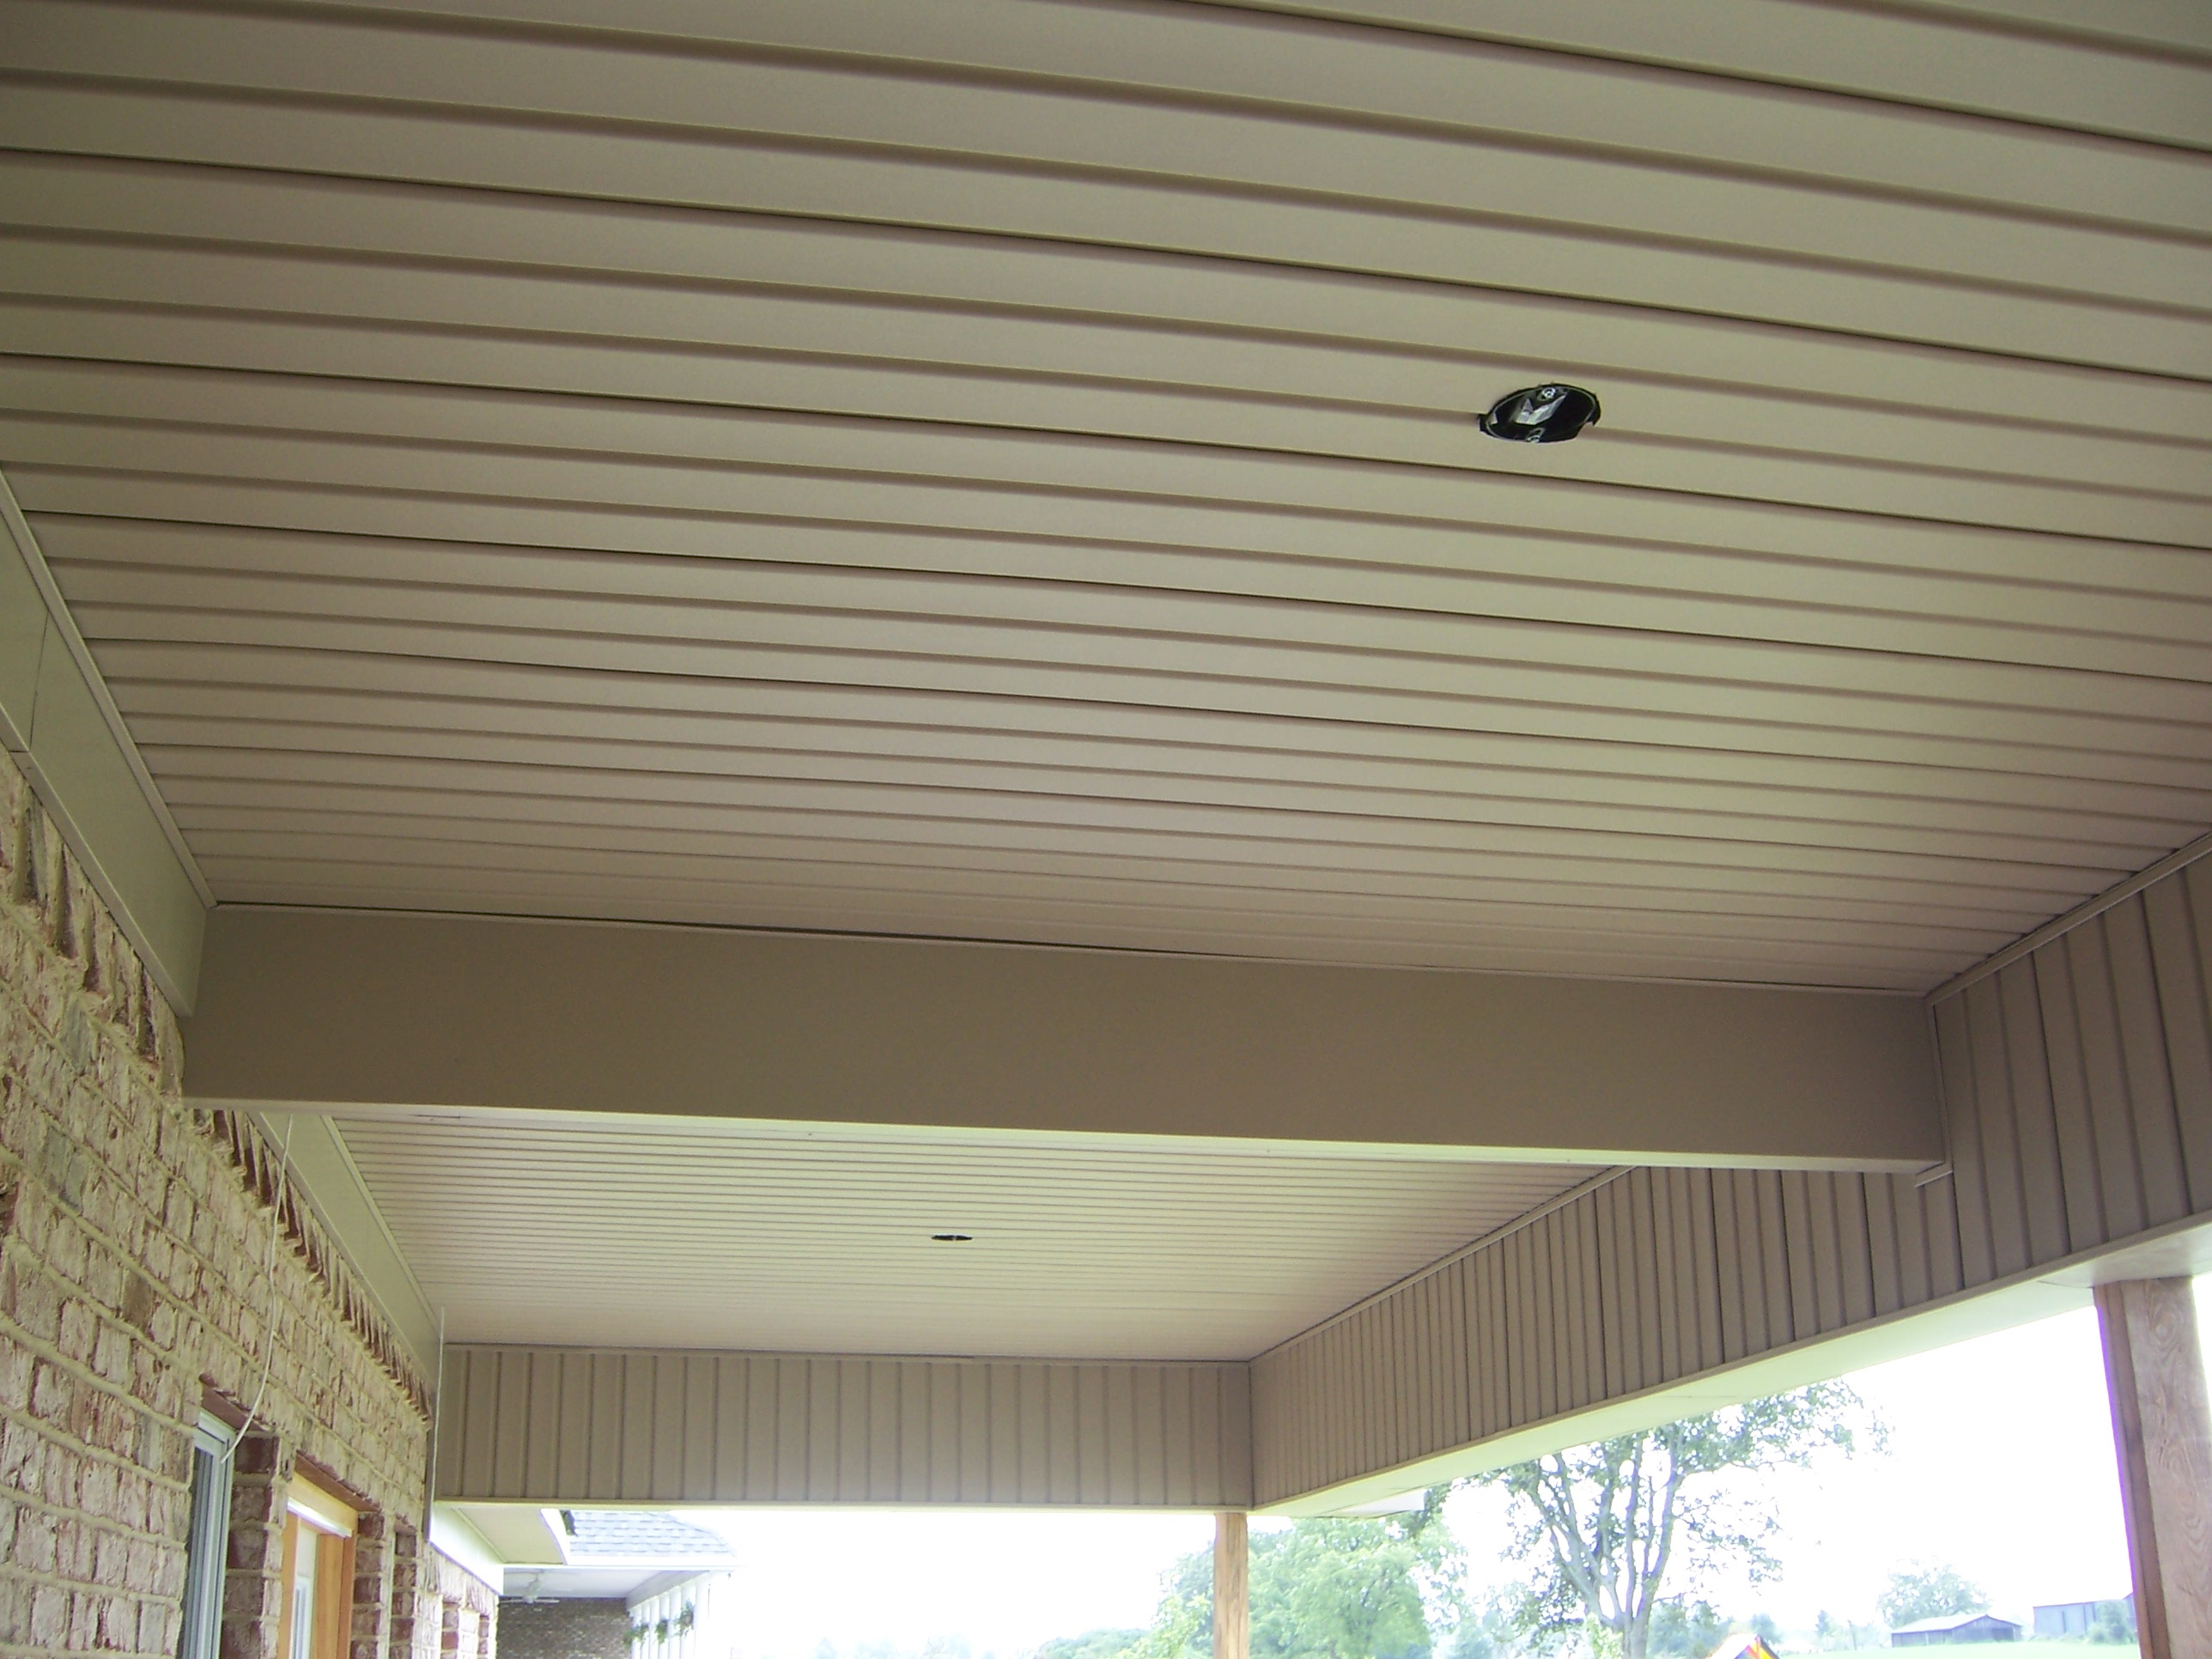 Vinyl Outdoor Ceiling Panels Images